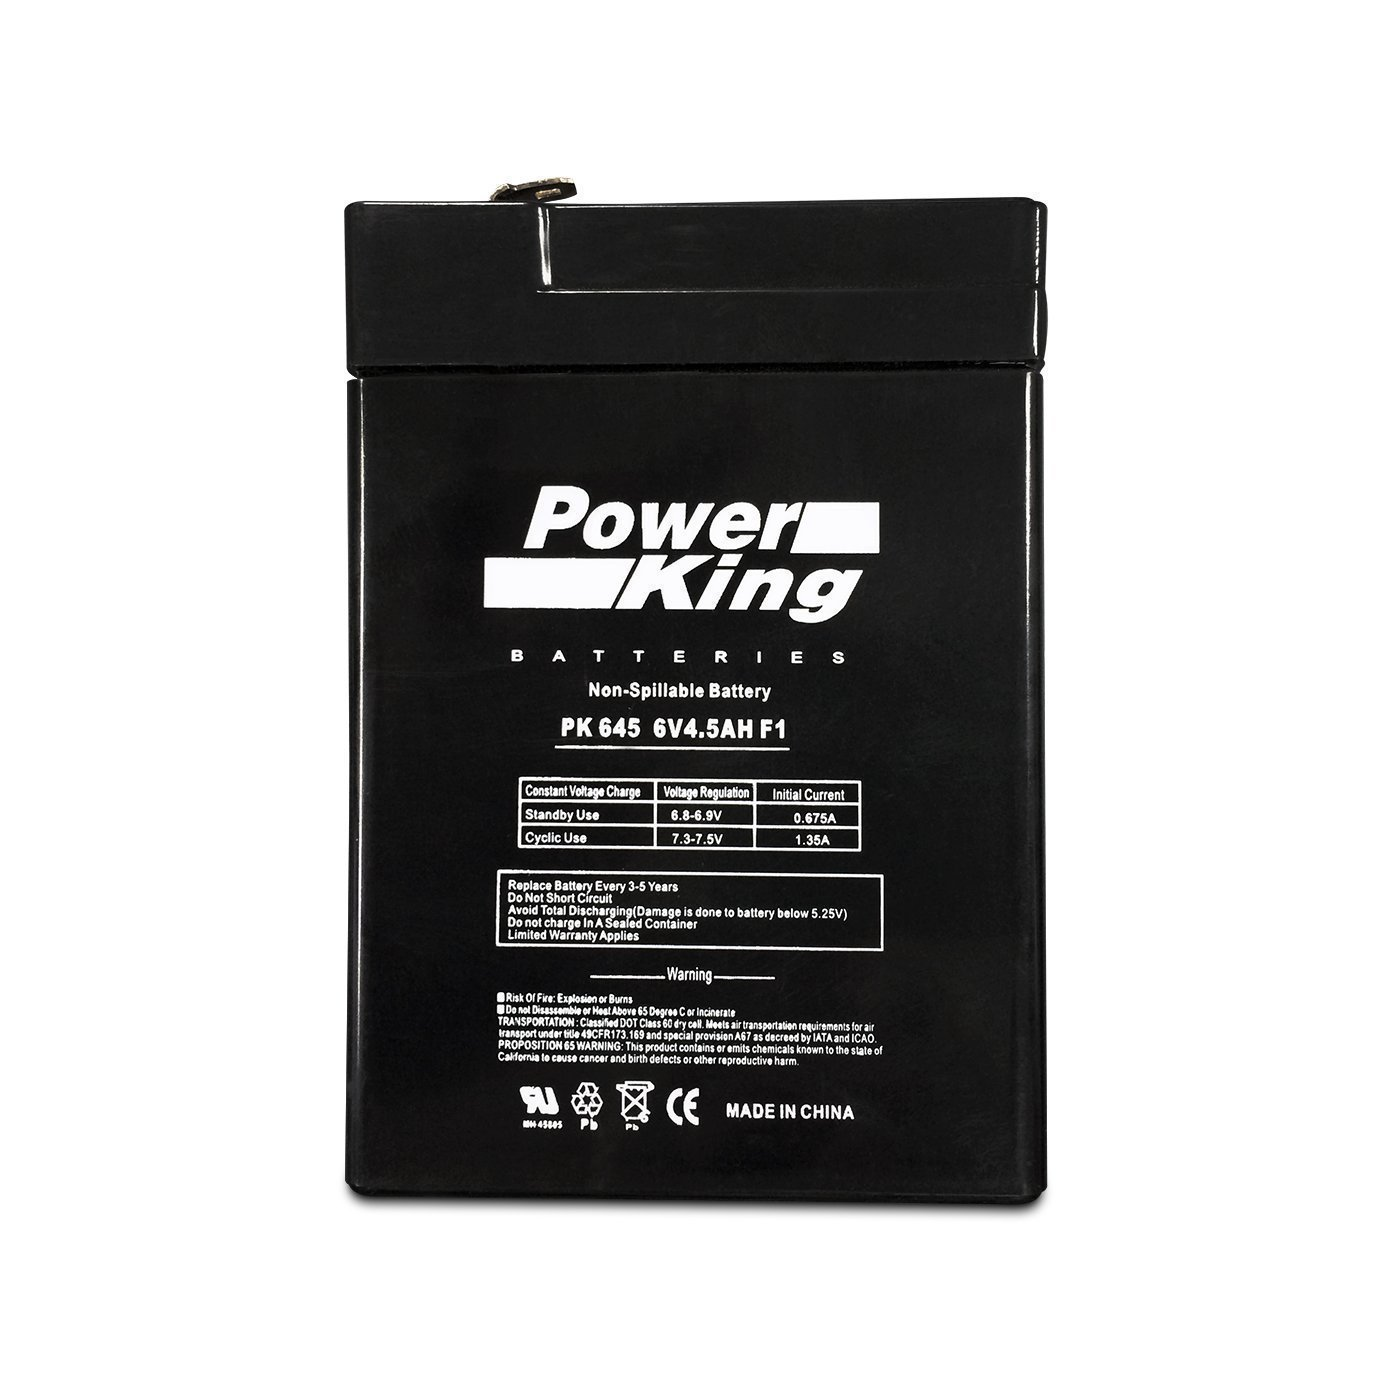 Jiming JM-6M4.5AC 6V 5Ah Rechargeable Sealed Lead Acid Battery Beiter DC Power